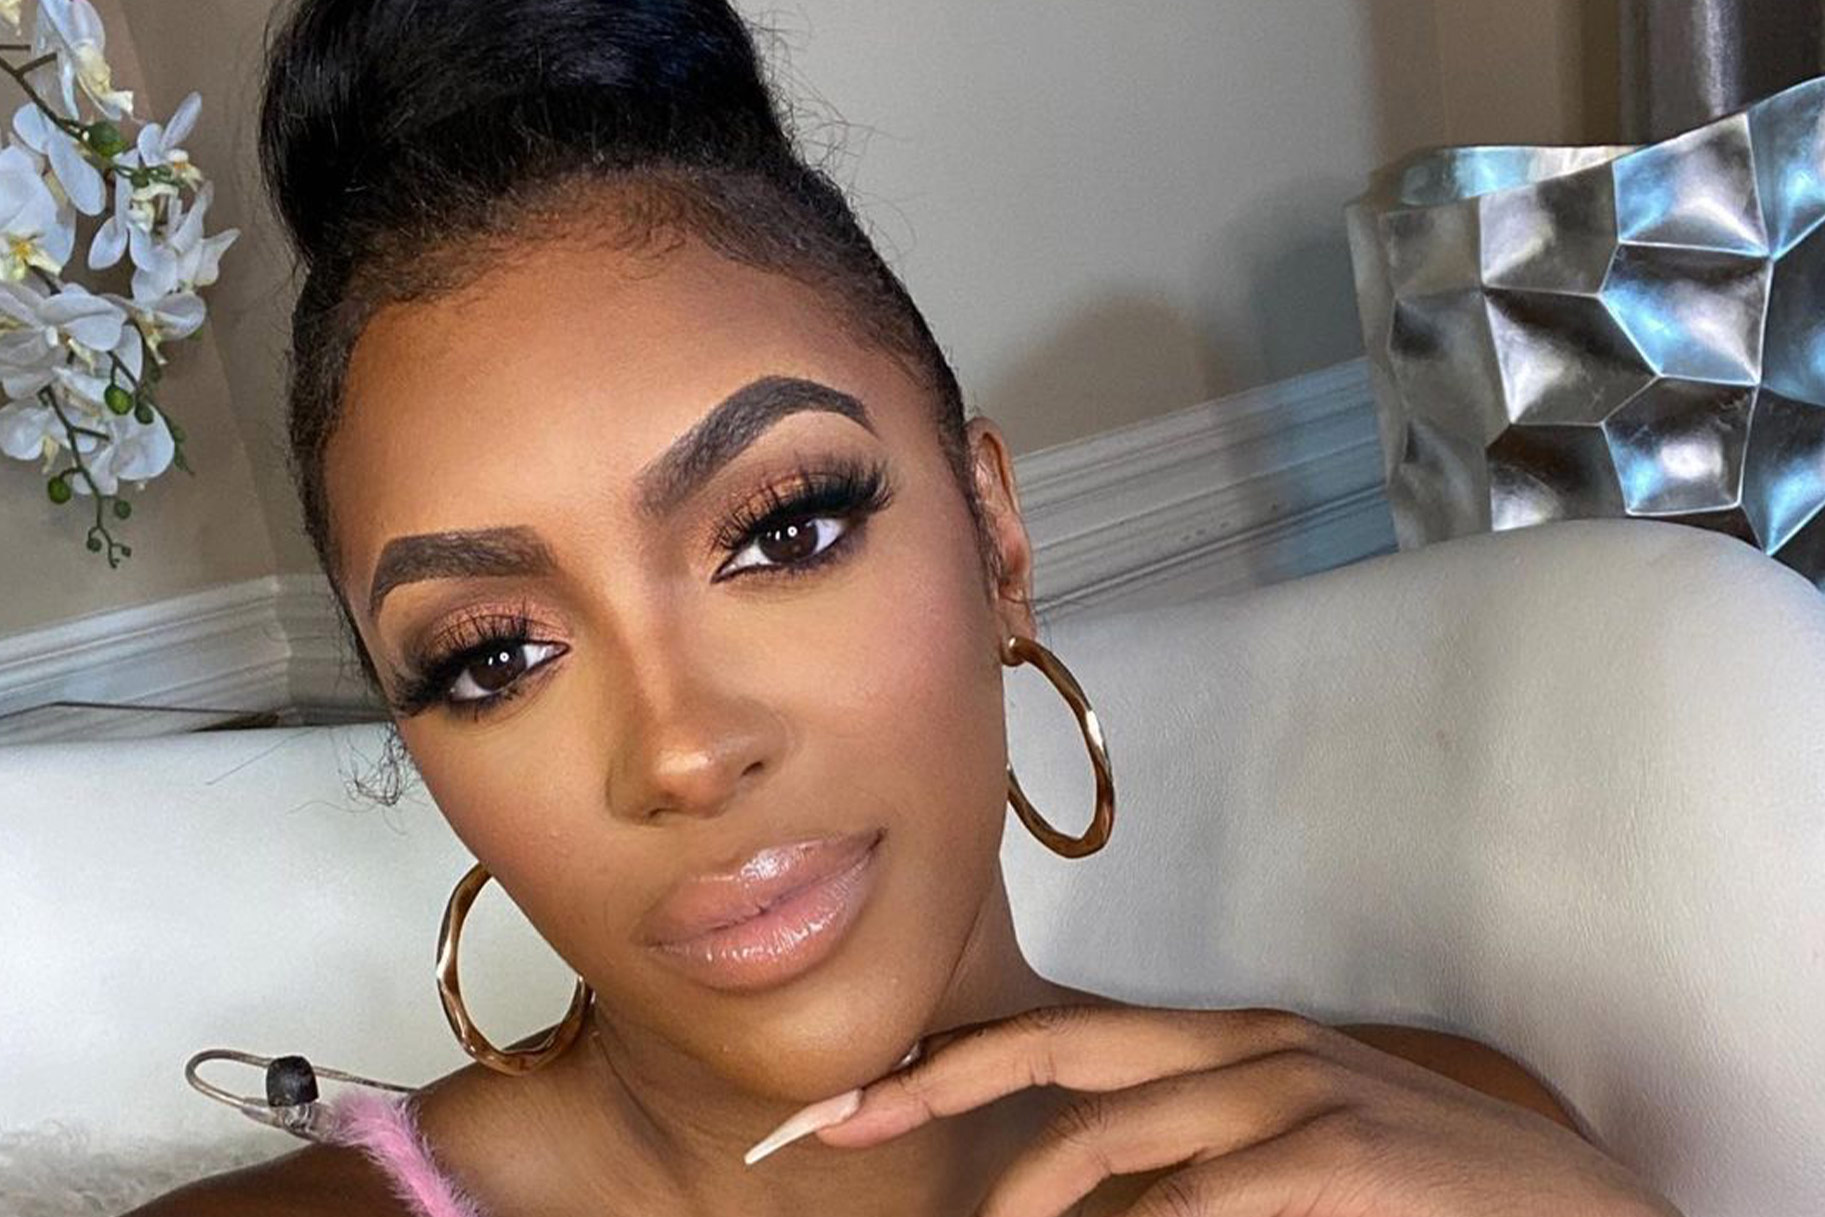 Porsha Williams Tells Fans Not To Get Lost In The Comparison Trap - Here's Her New Podcast